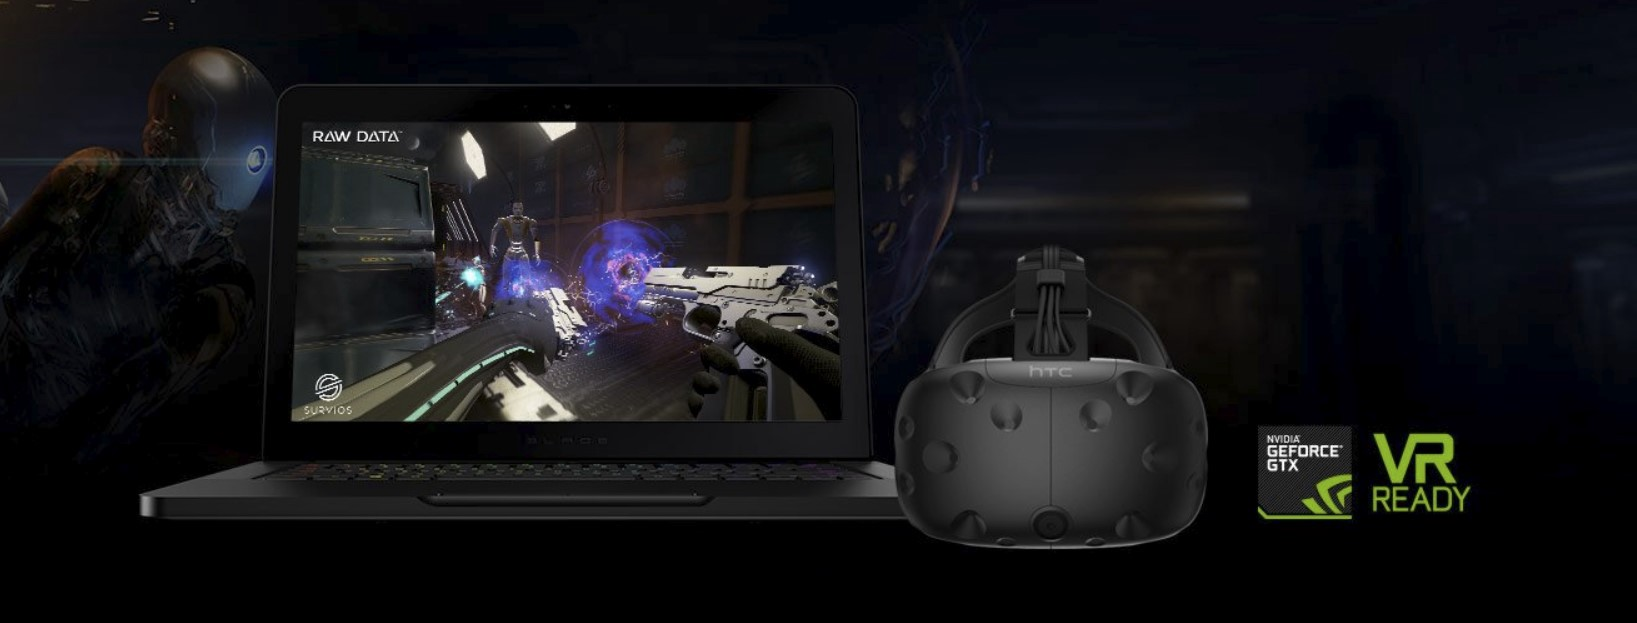 What to watch out for when you buy a gaming laptop - Bigscreen